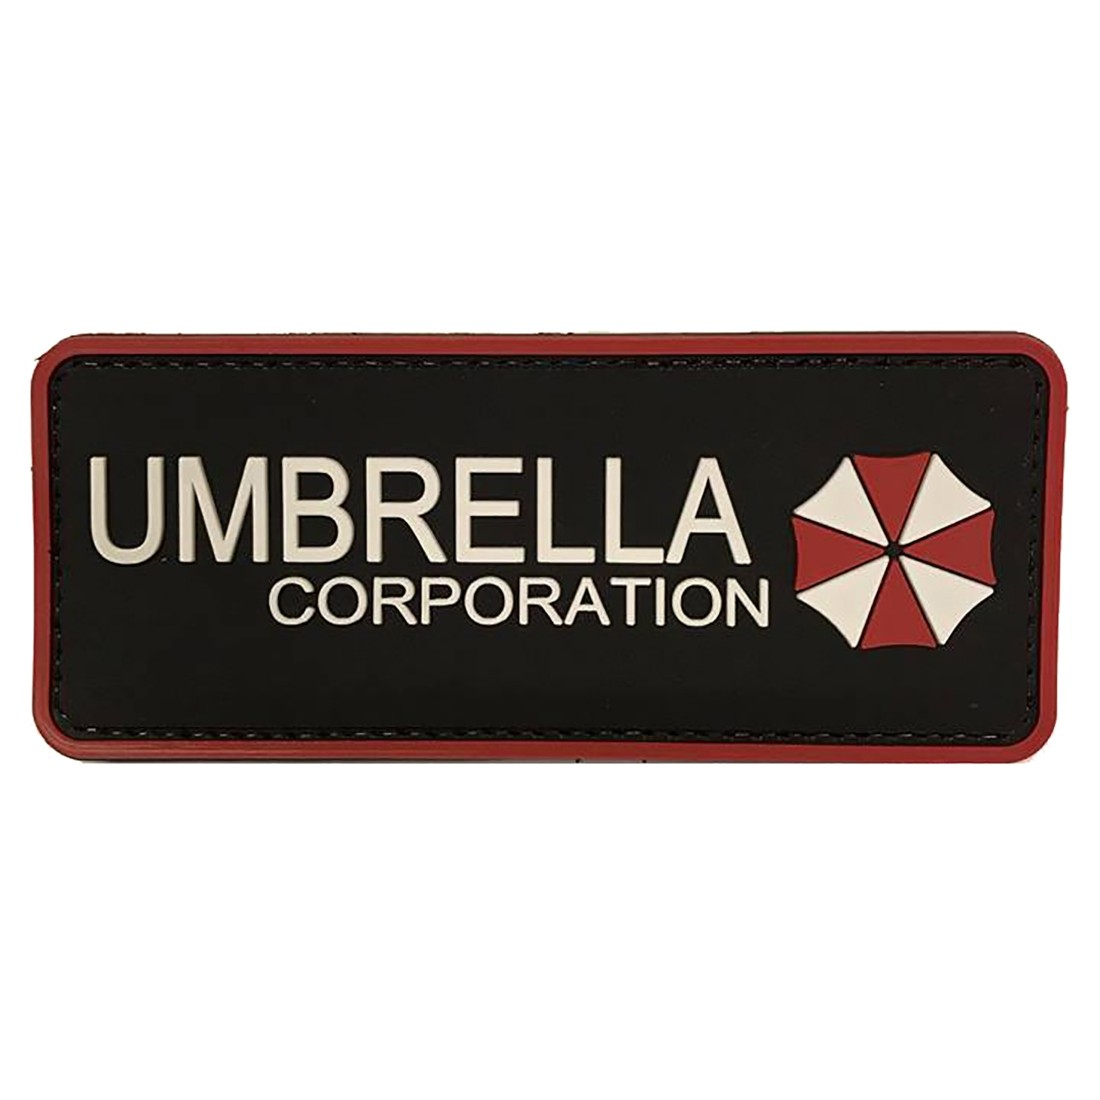 UMBRELLA CORPORATION Tactical Rubber Velcro Patches